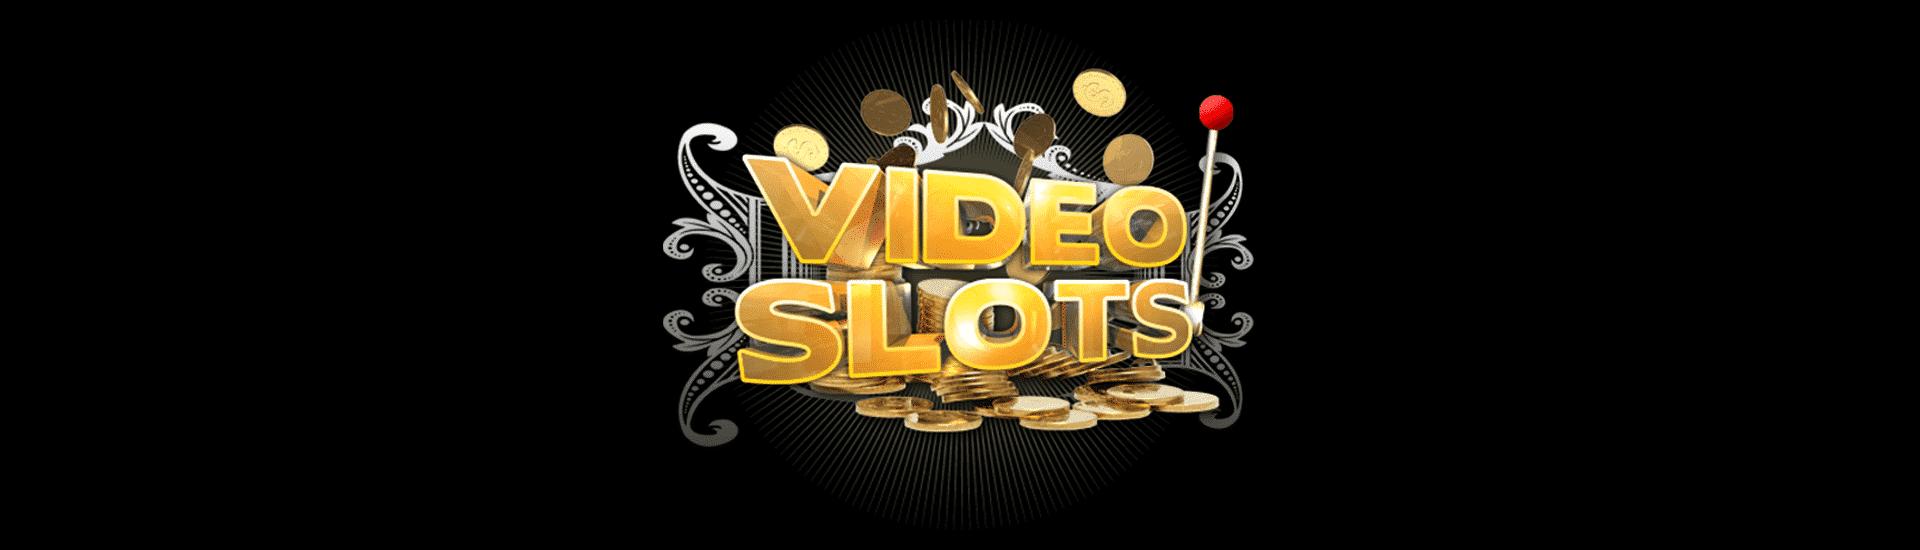 Videoslots Featured Image